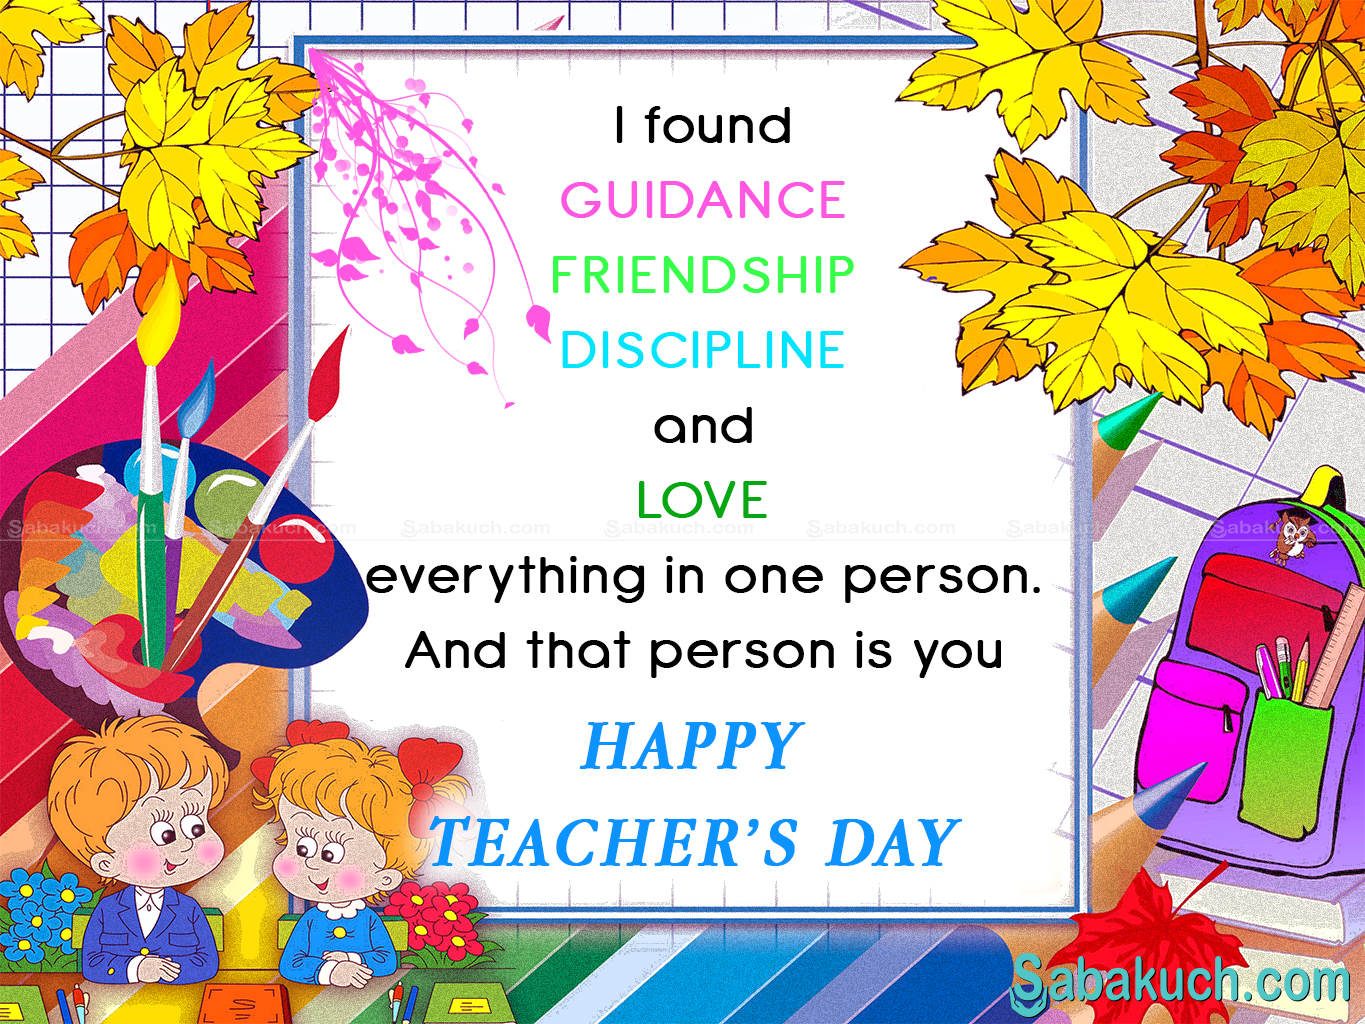 Teachers day...mnh